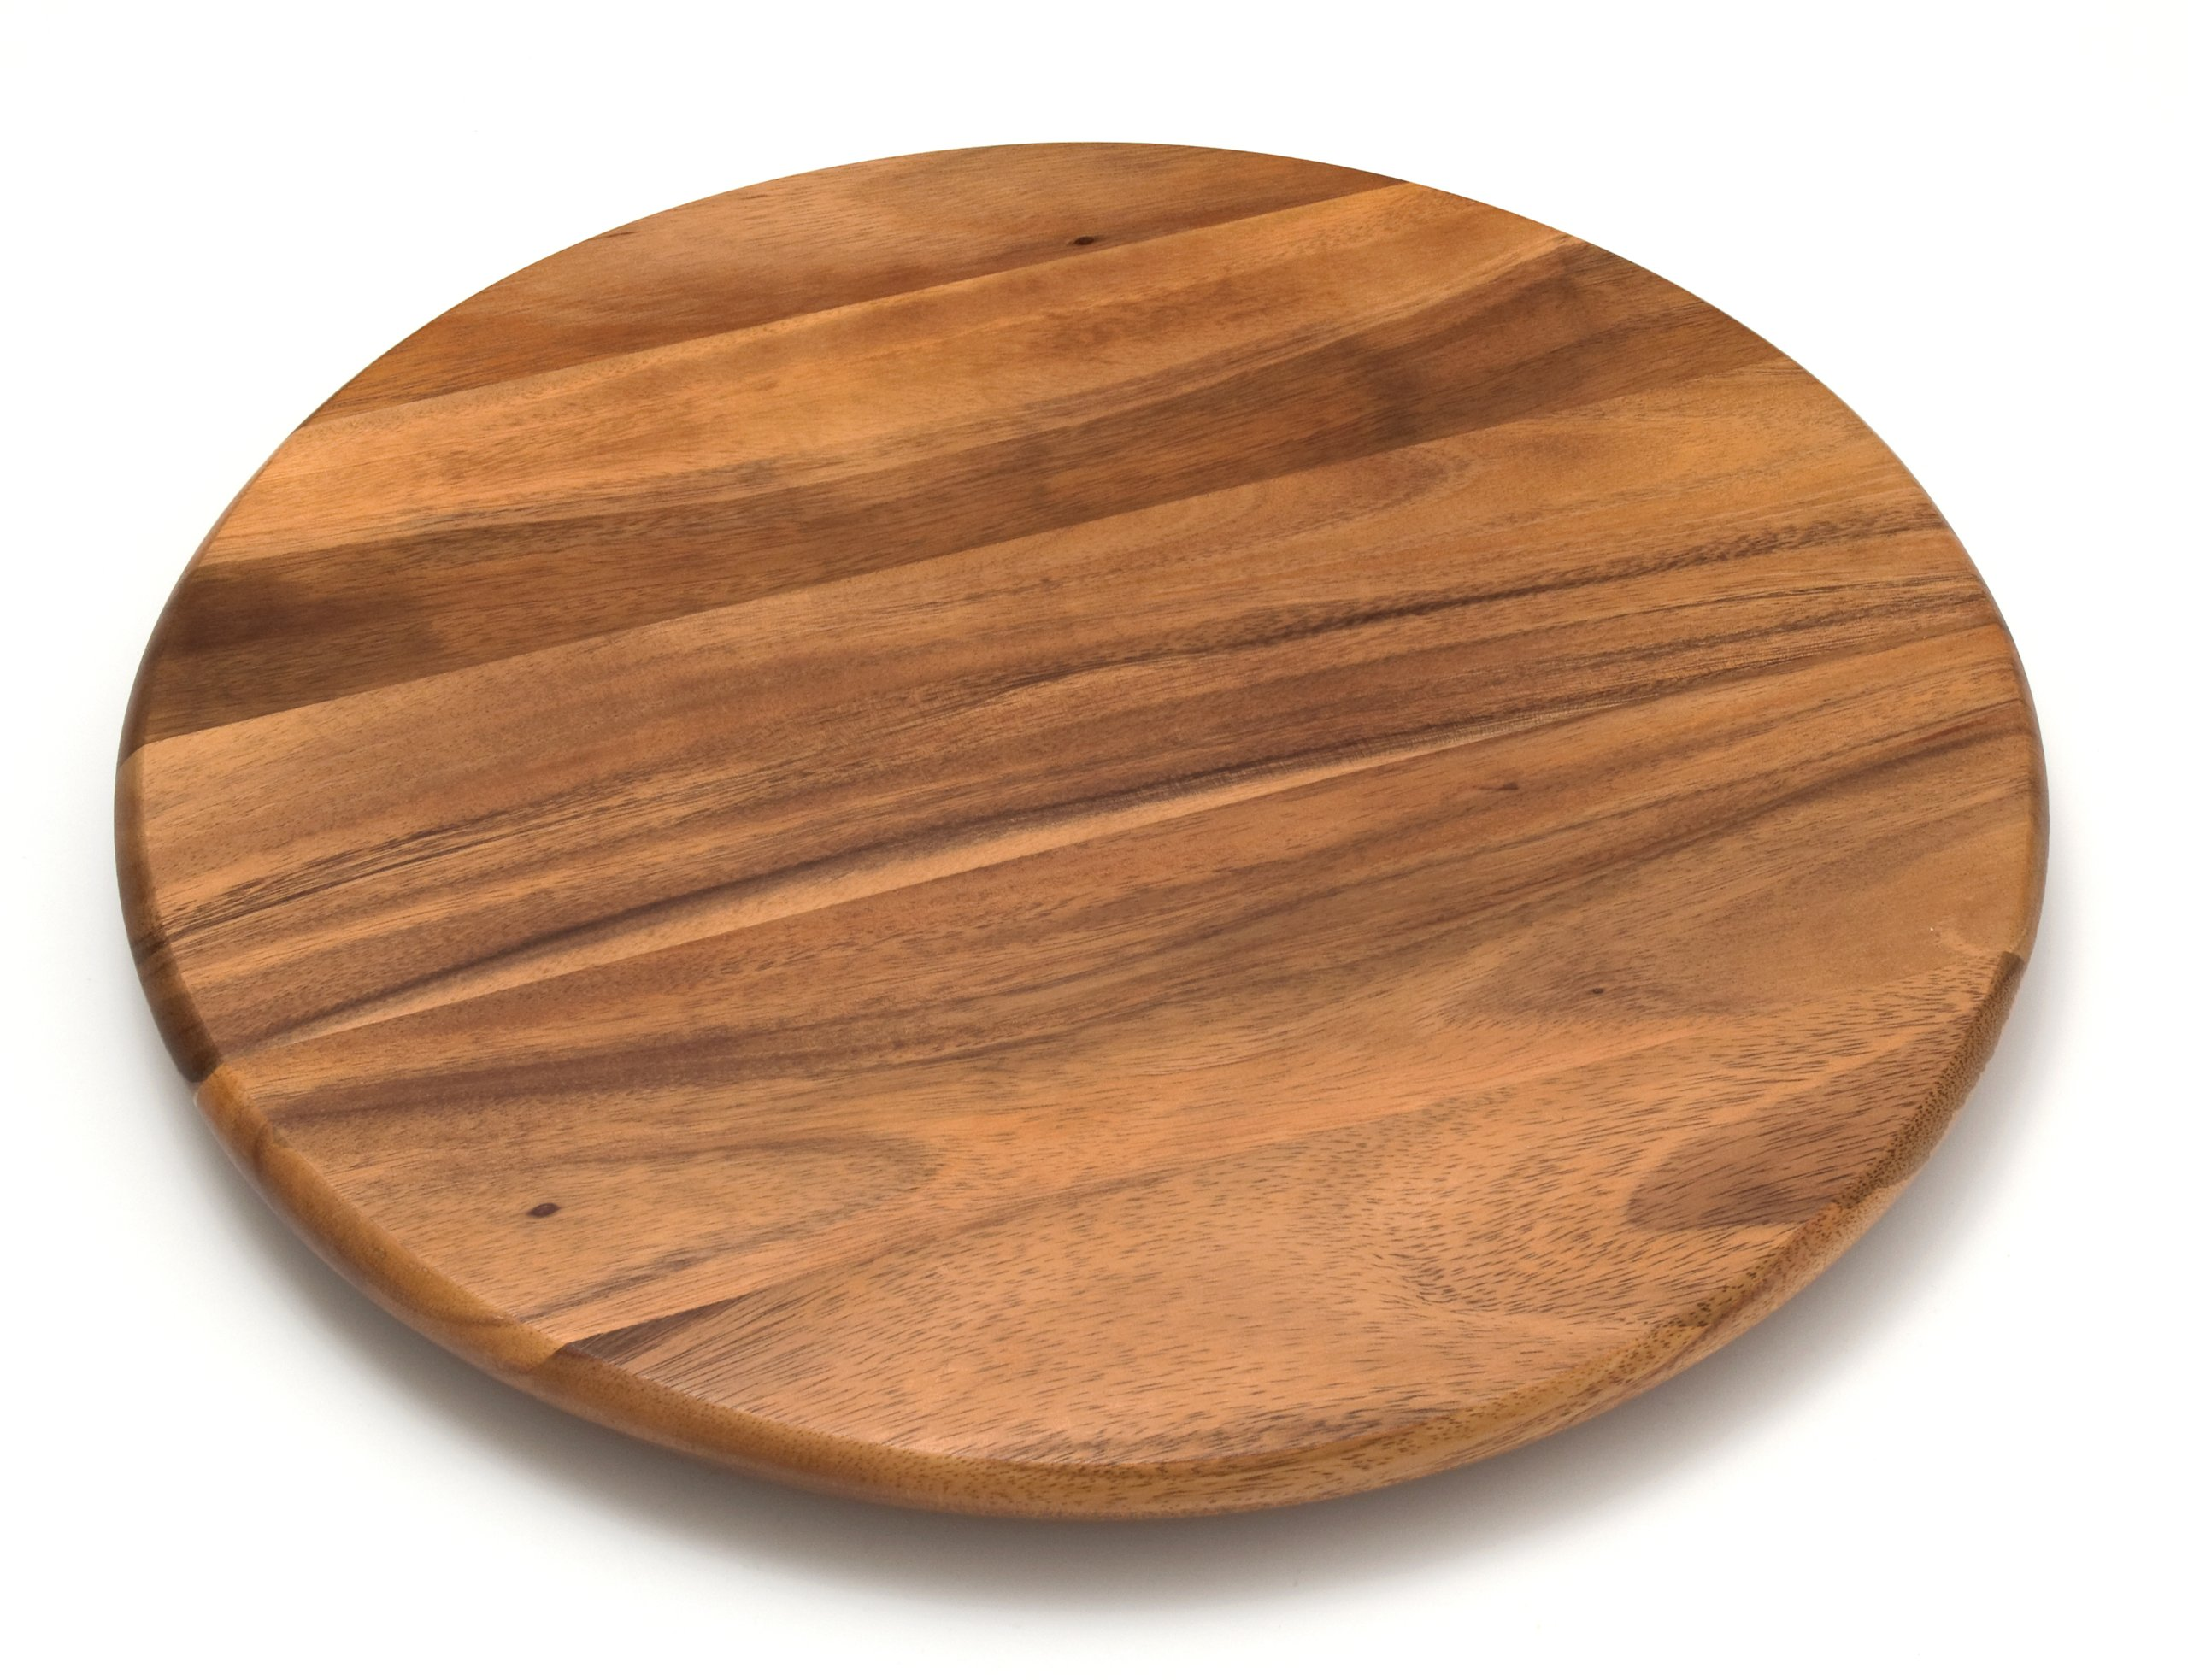 Lipper International 1118 Acacia Wood 18'' Lazy Susan Kitchen Turntable